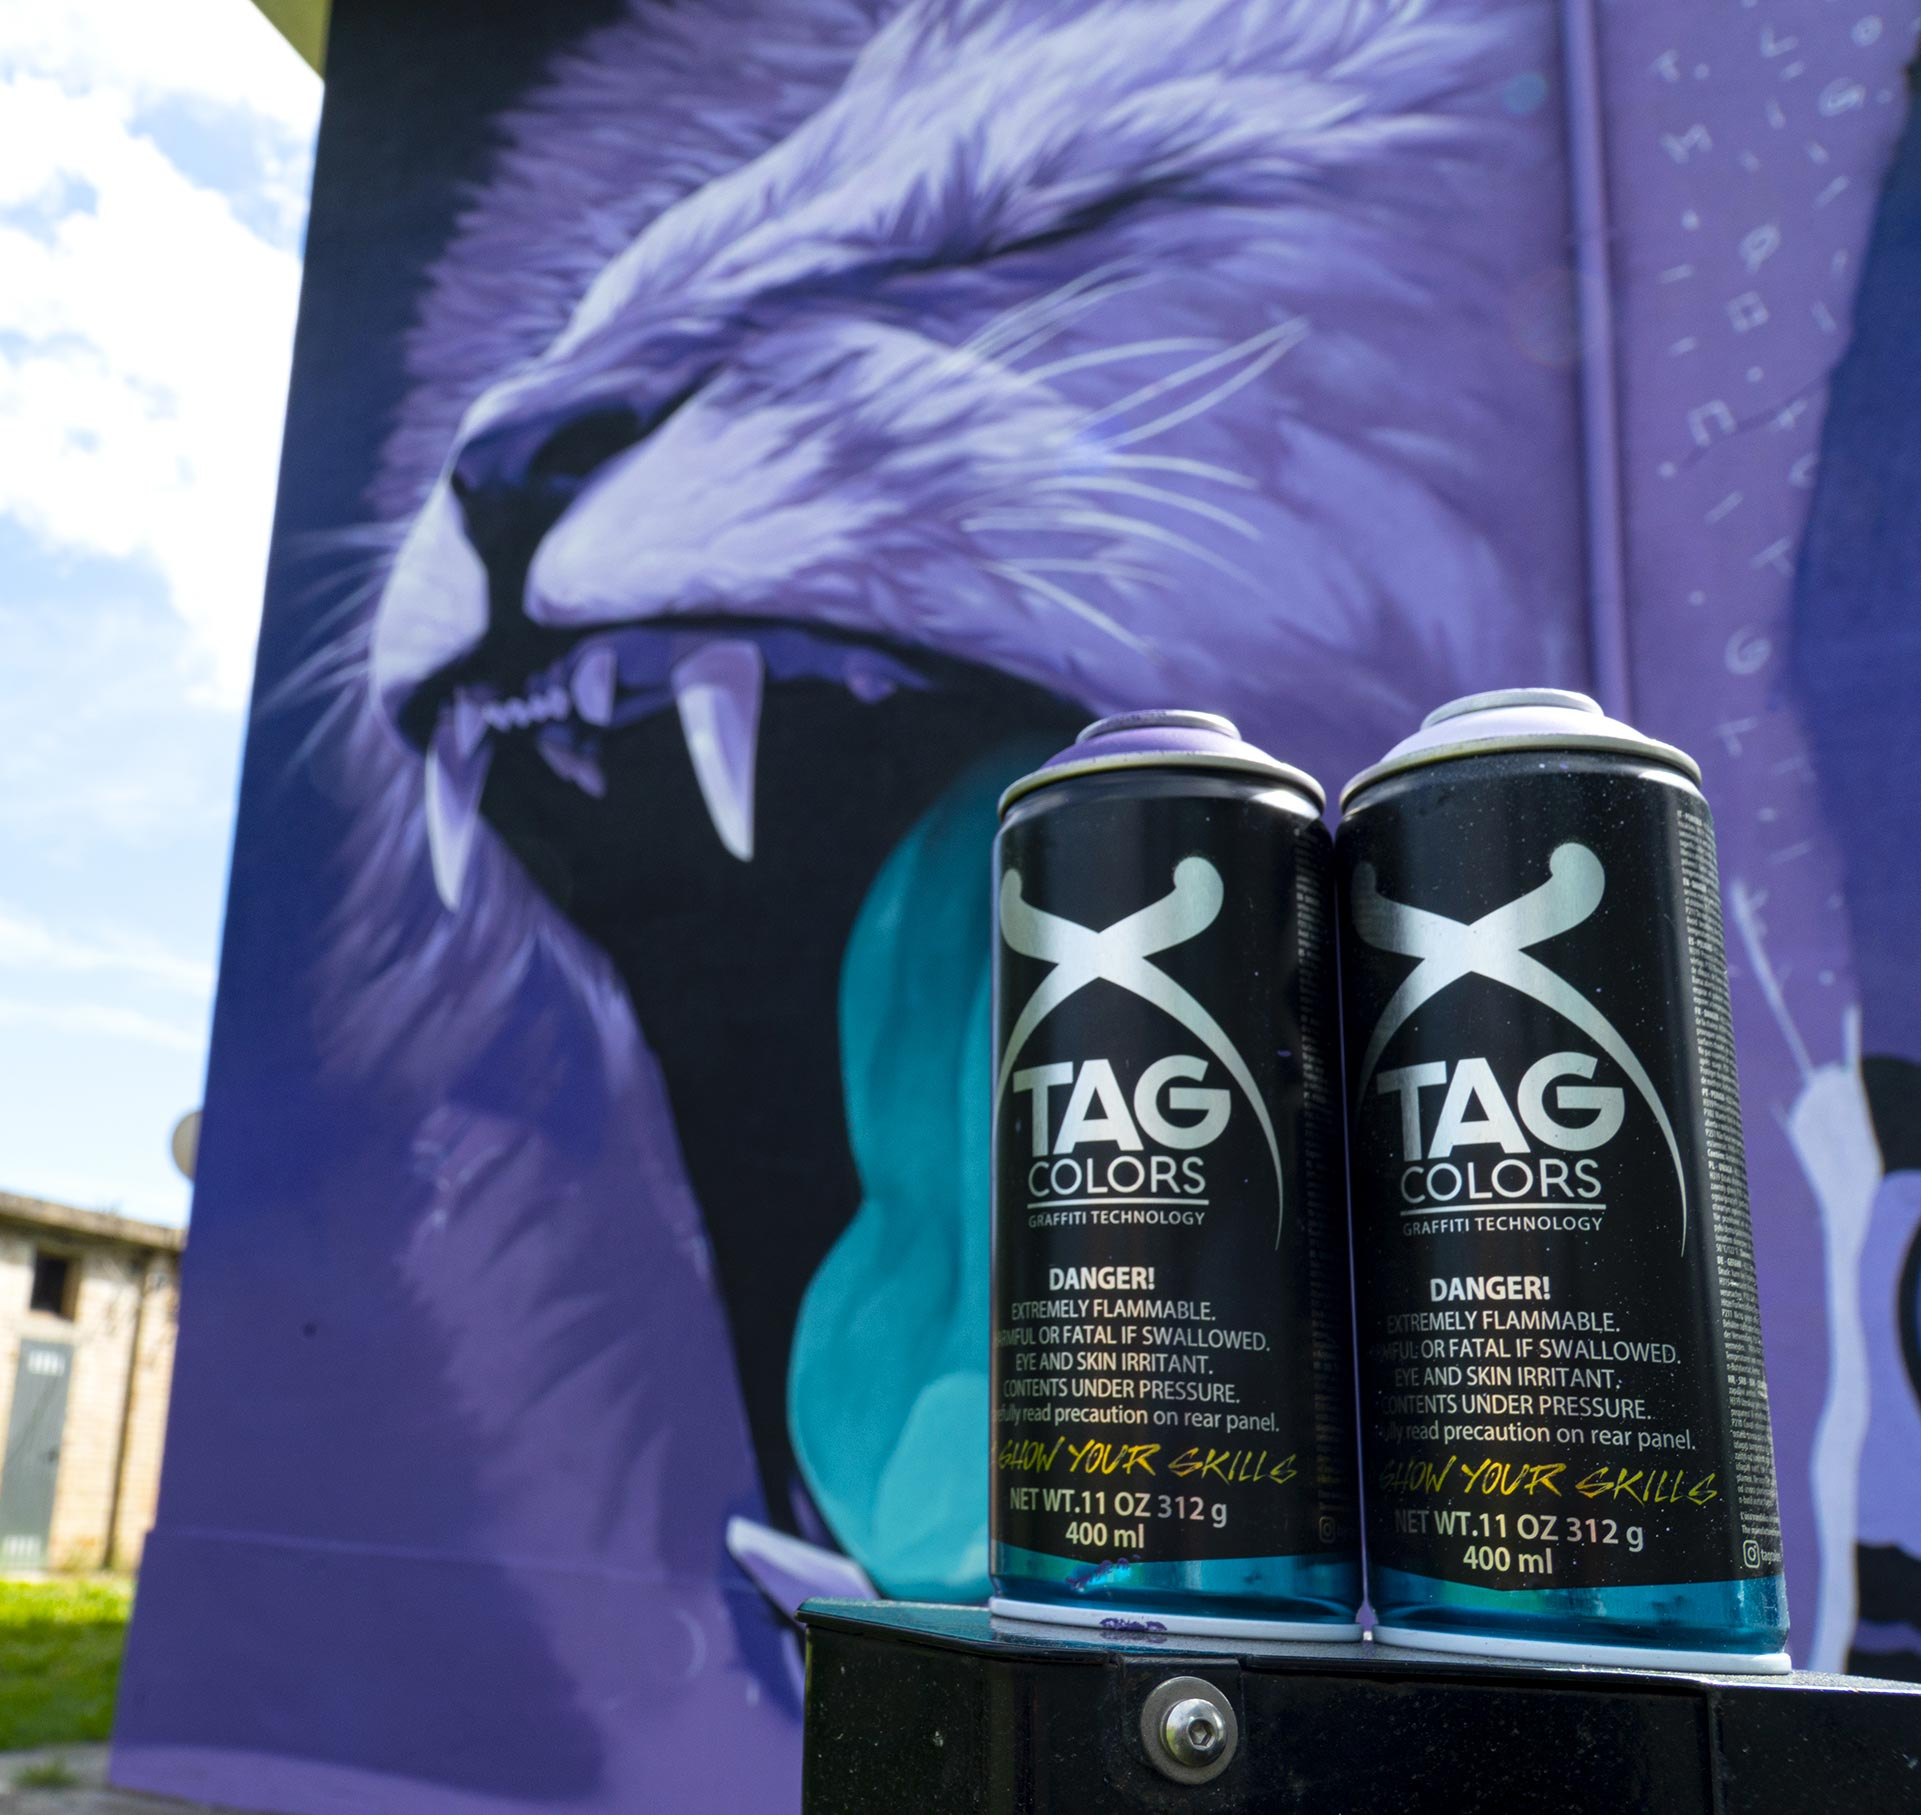 The new spray revolution of TAG Colors protagonist of ArtU Festival